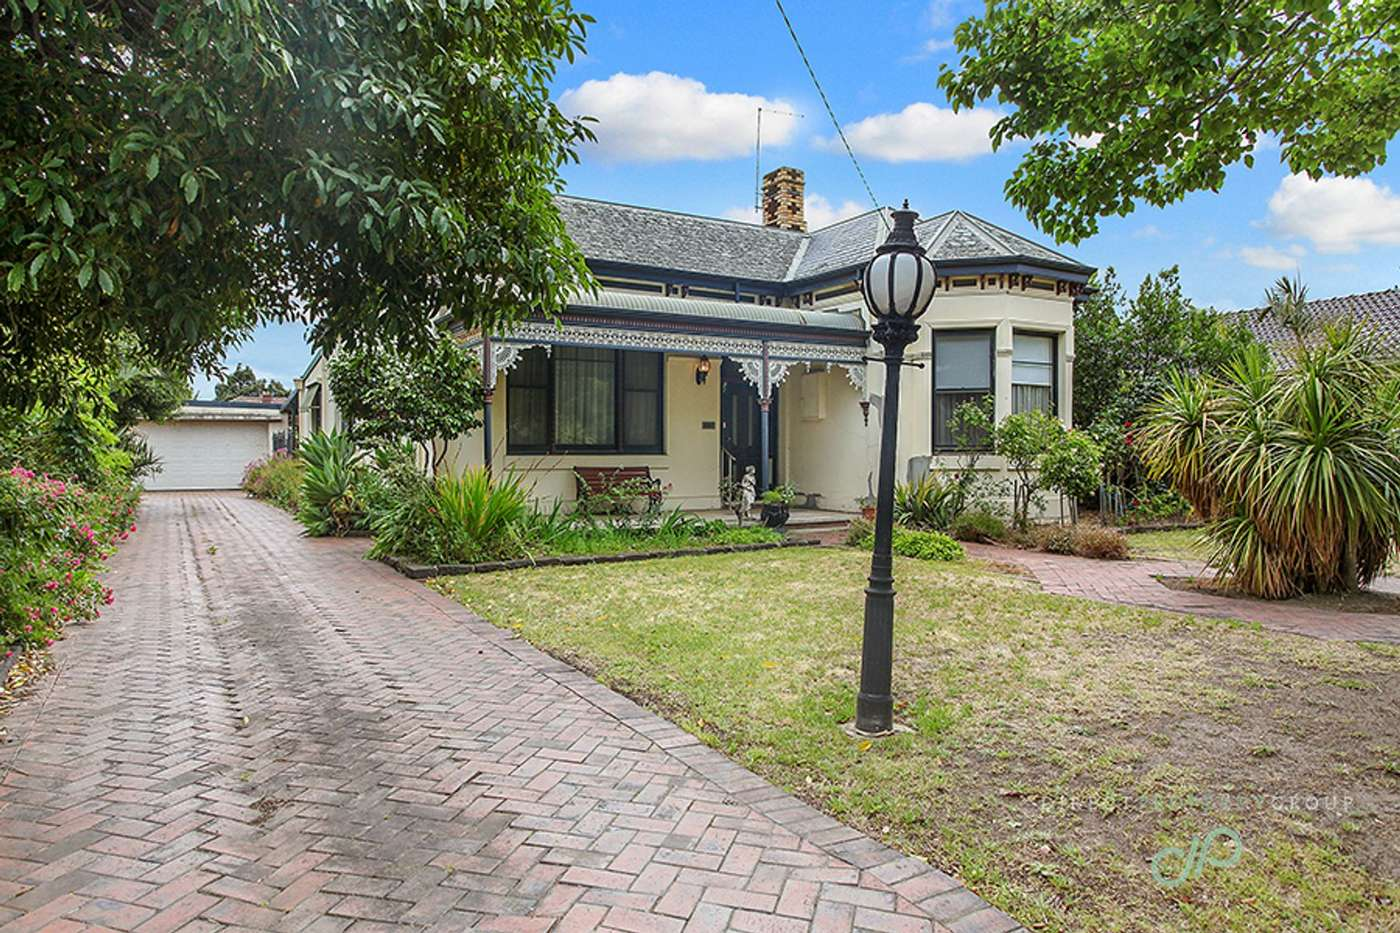 Main view of Homely house listing, 31 The Grove, Coburg, VIC 3058